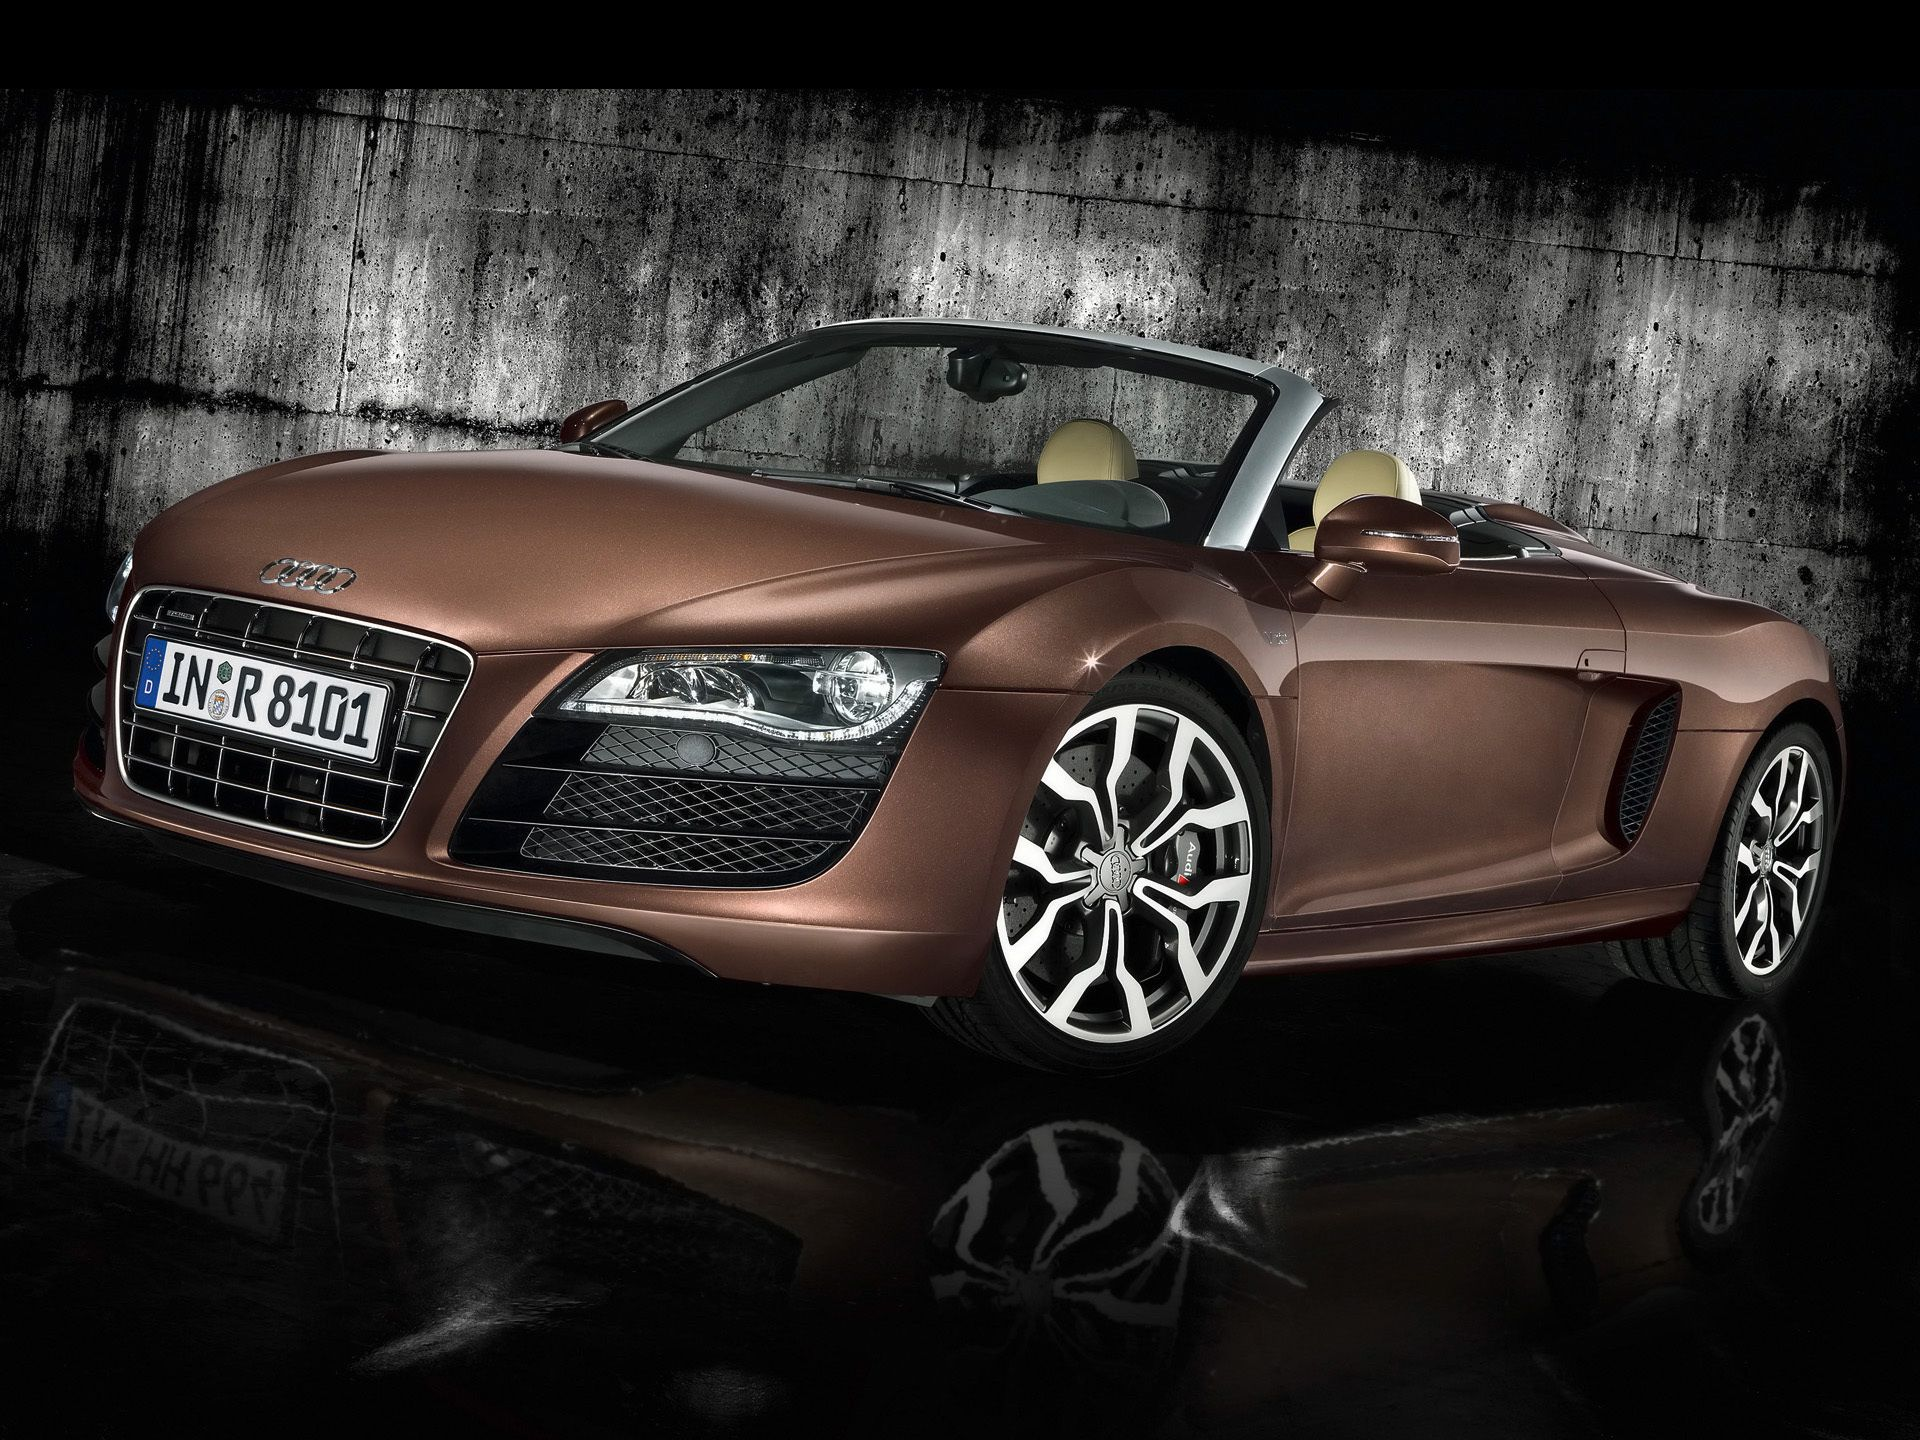 Audi r8 Spyder | audi cars | Pinterest | Cars and Wheels